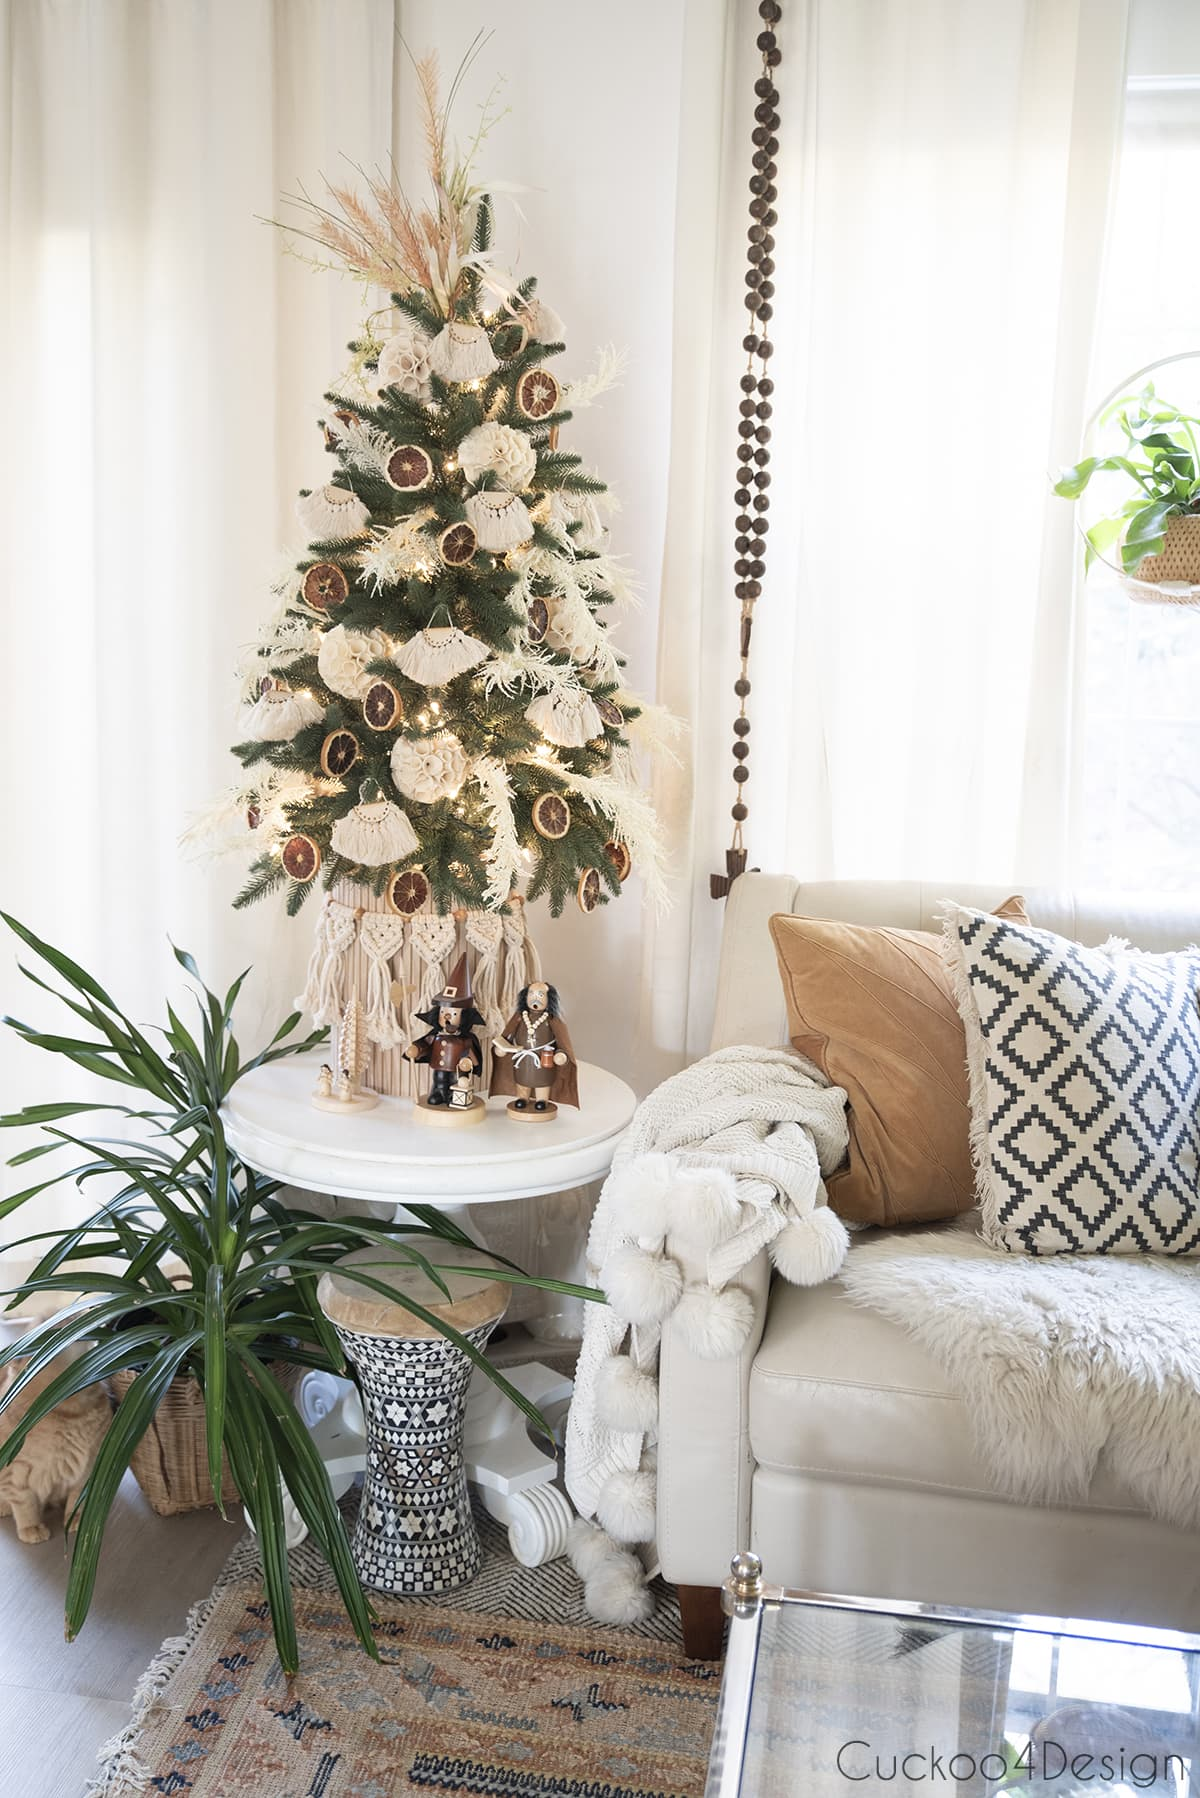 mustard toned pillows and rug with boho Christmas tree